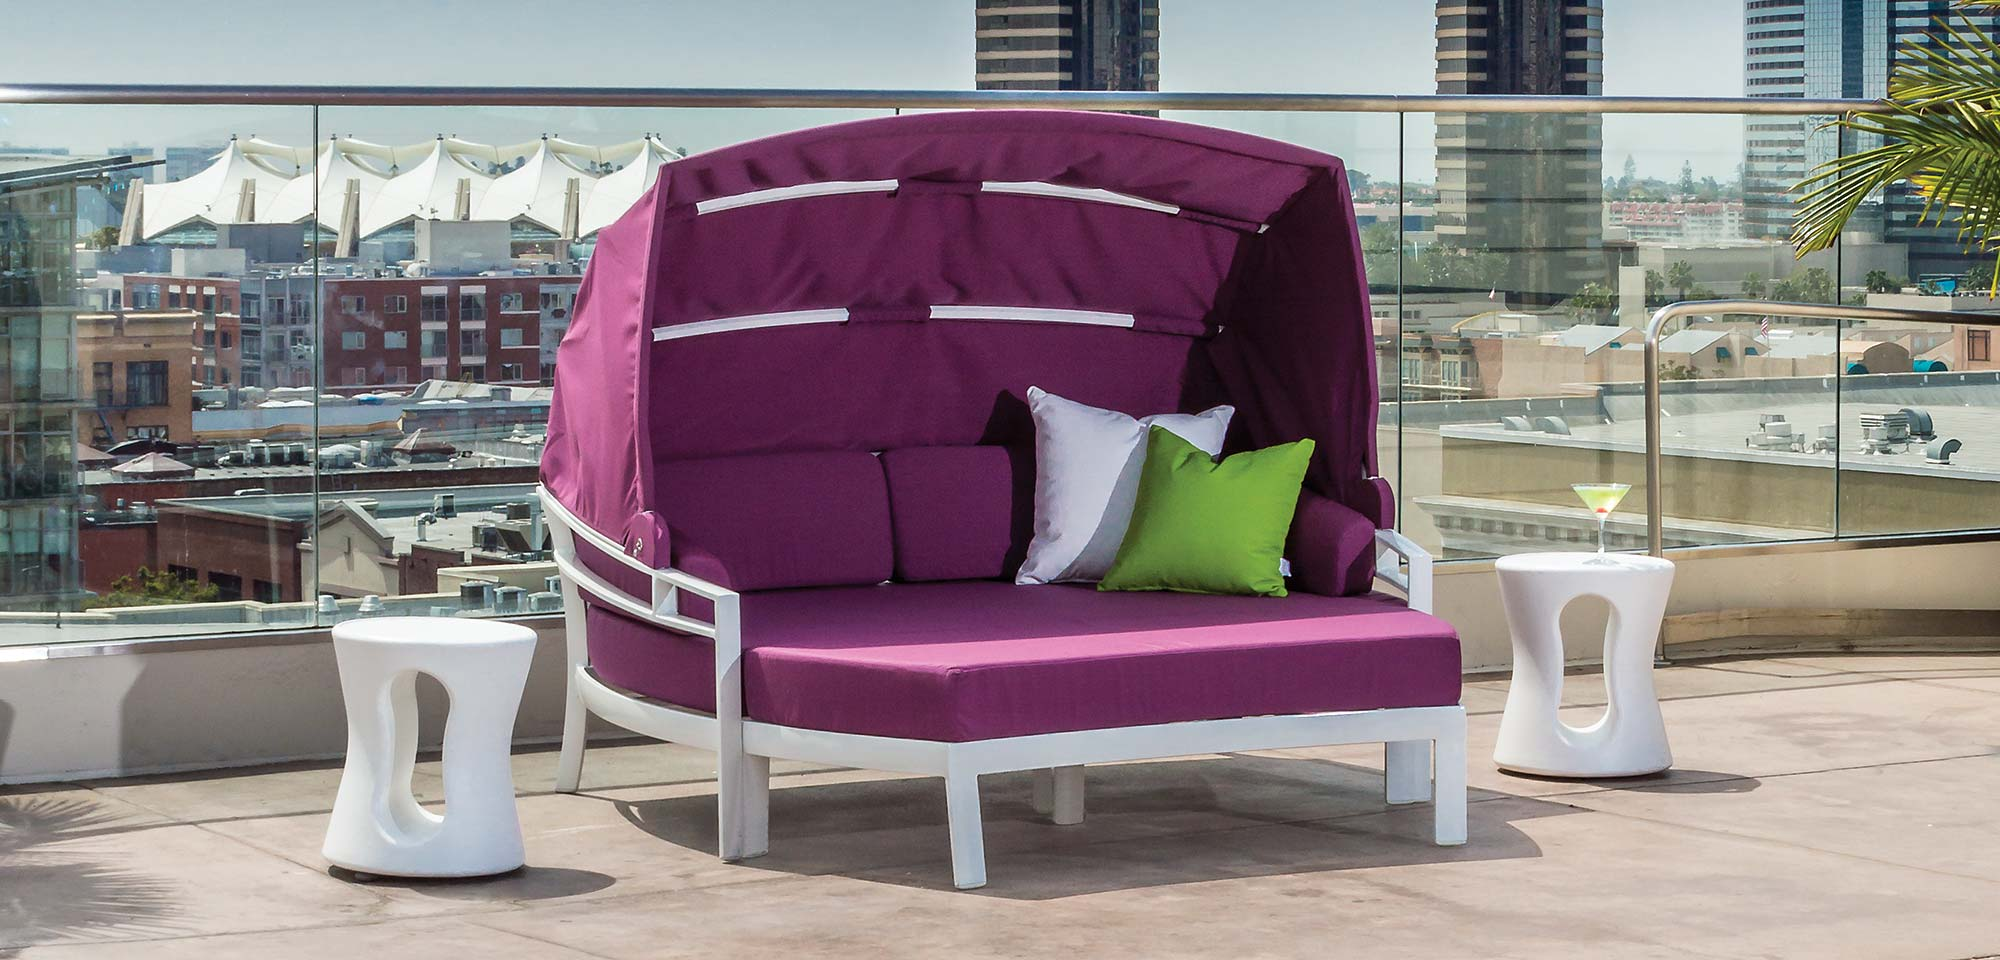 Commercial Outdoor Furniture | Patio Furniture | Outdoor Furniture Sets